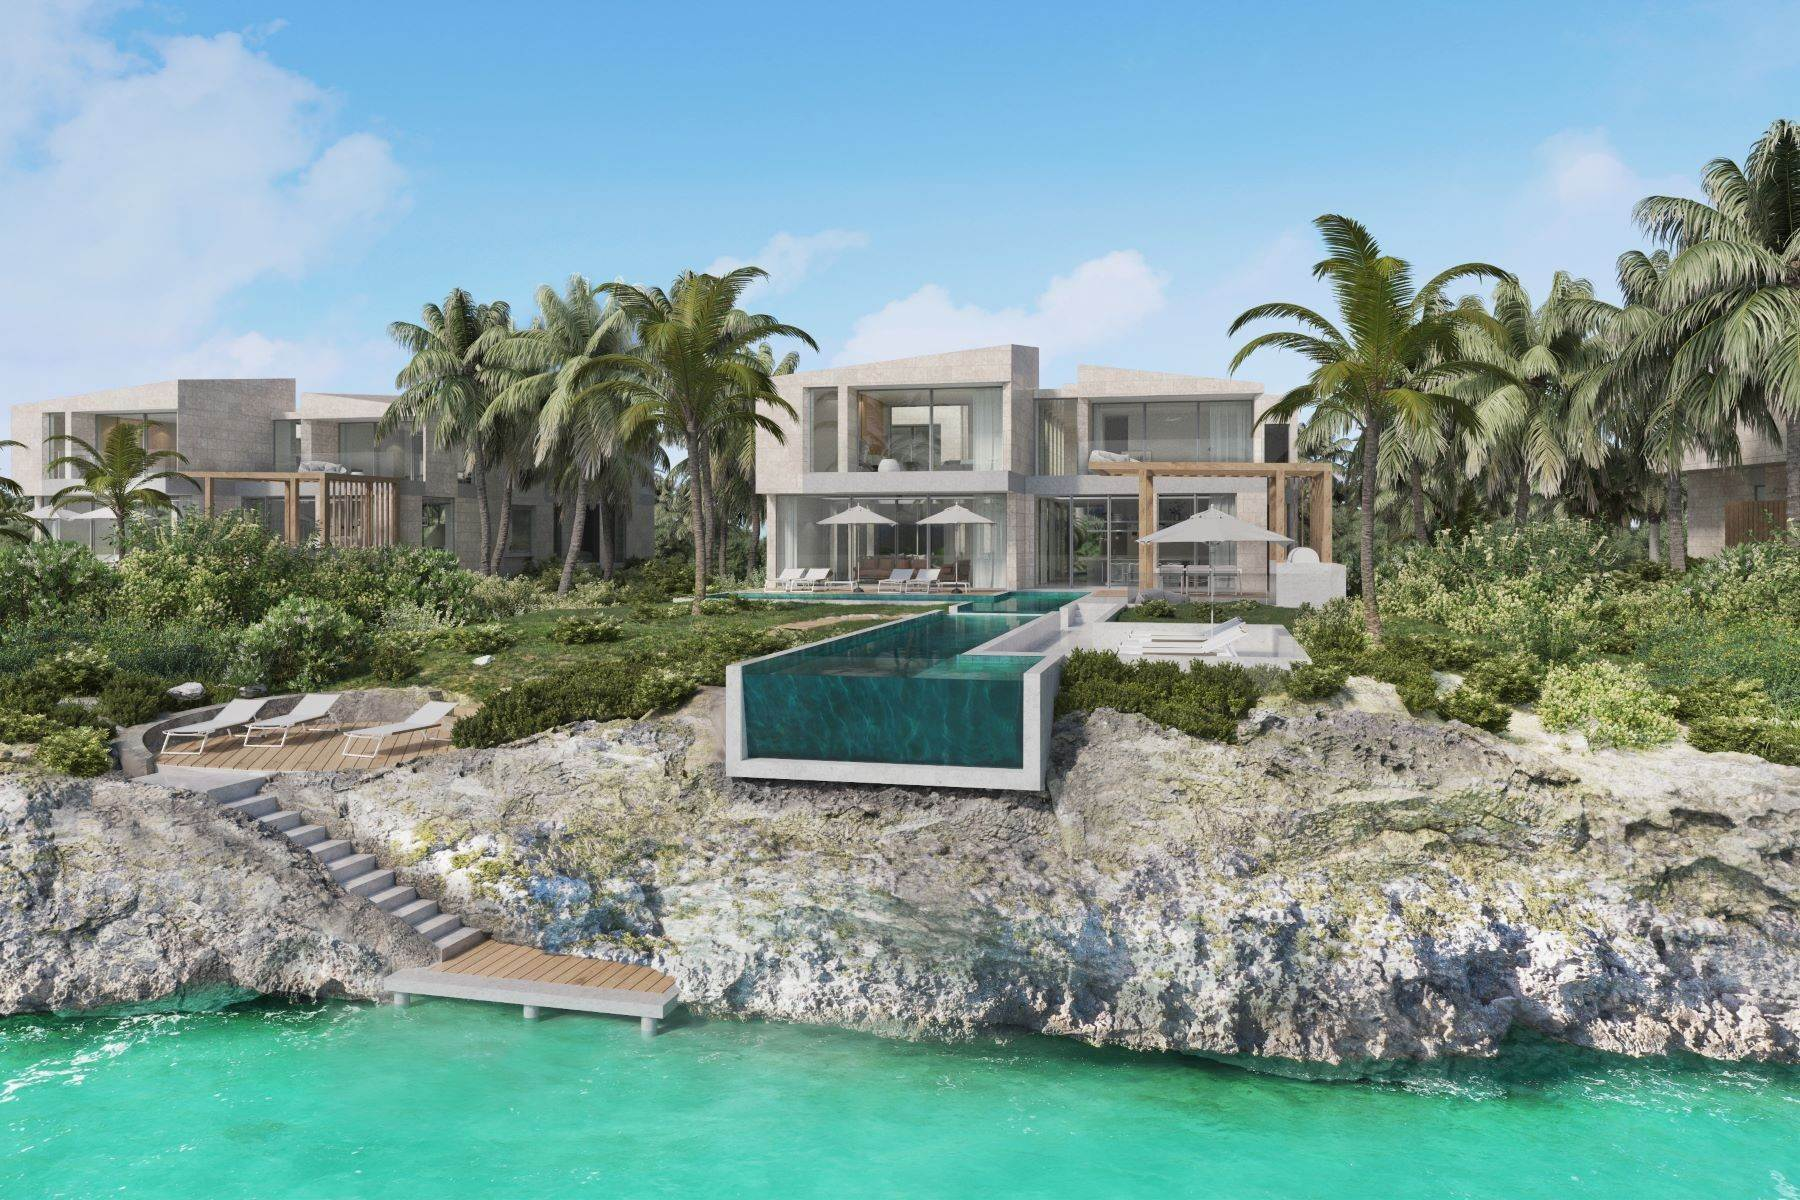 Single Family Homes for Sale at SOUTH BANK - THE OCEAN ESTATE I - SHOAL VILLA 15 South Bank, Long Bay, Providenciales Turks And Caicos Islands